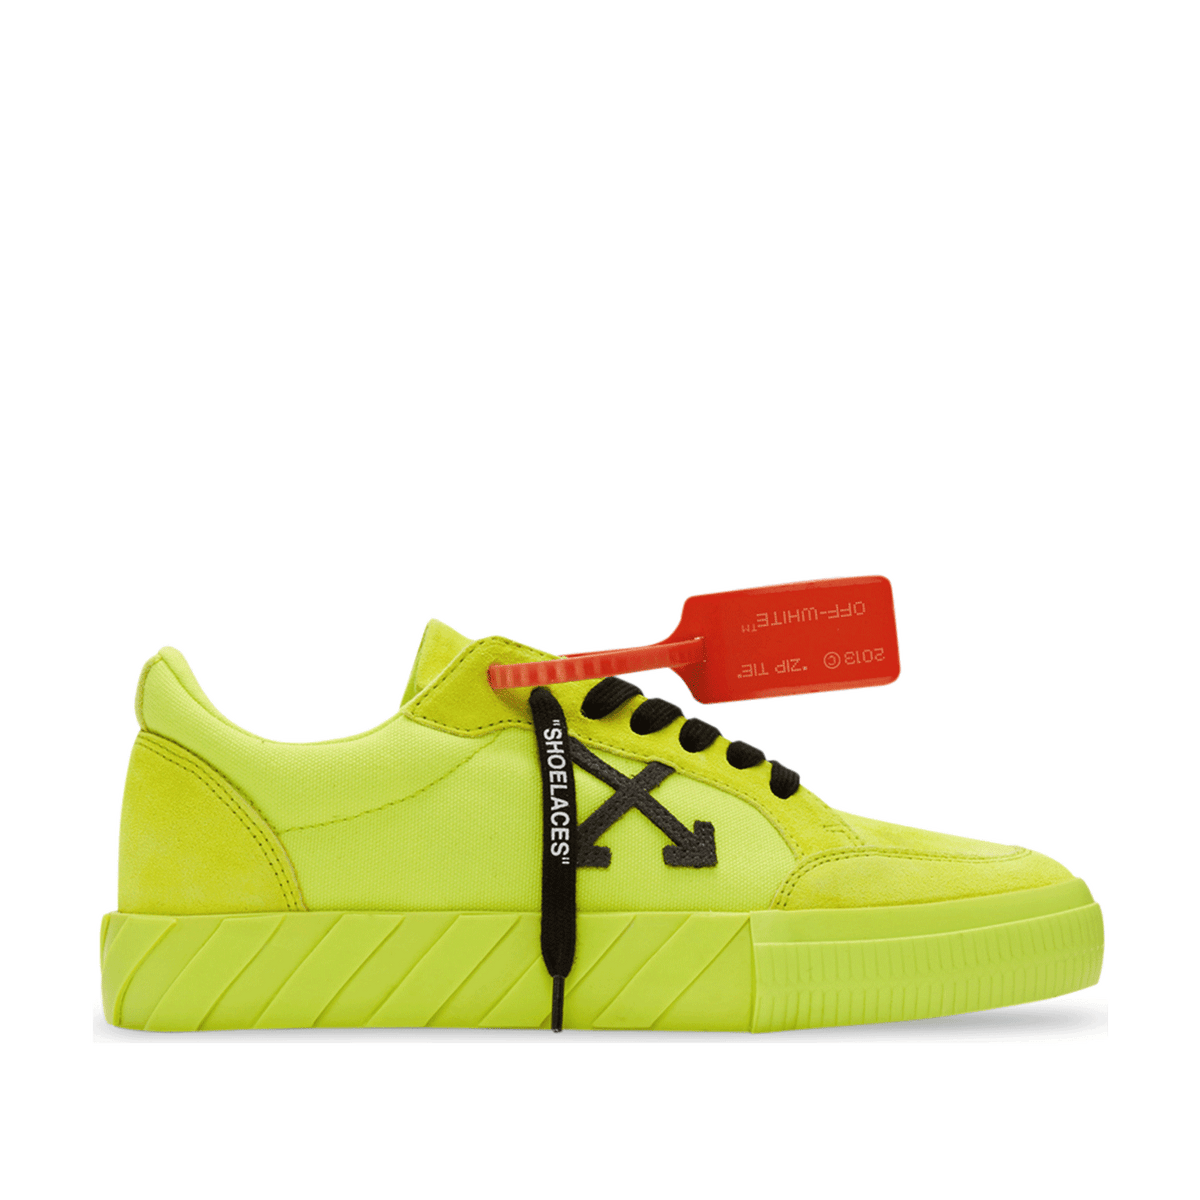 Low Vulcanized - Fluo Yellow / Black